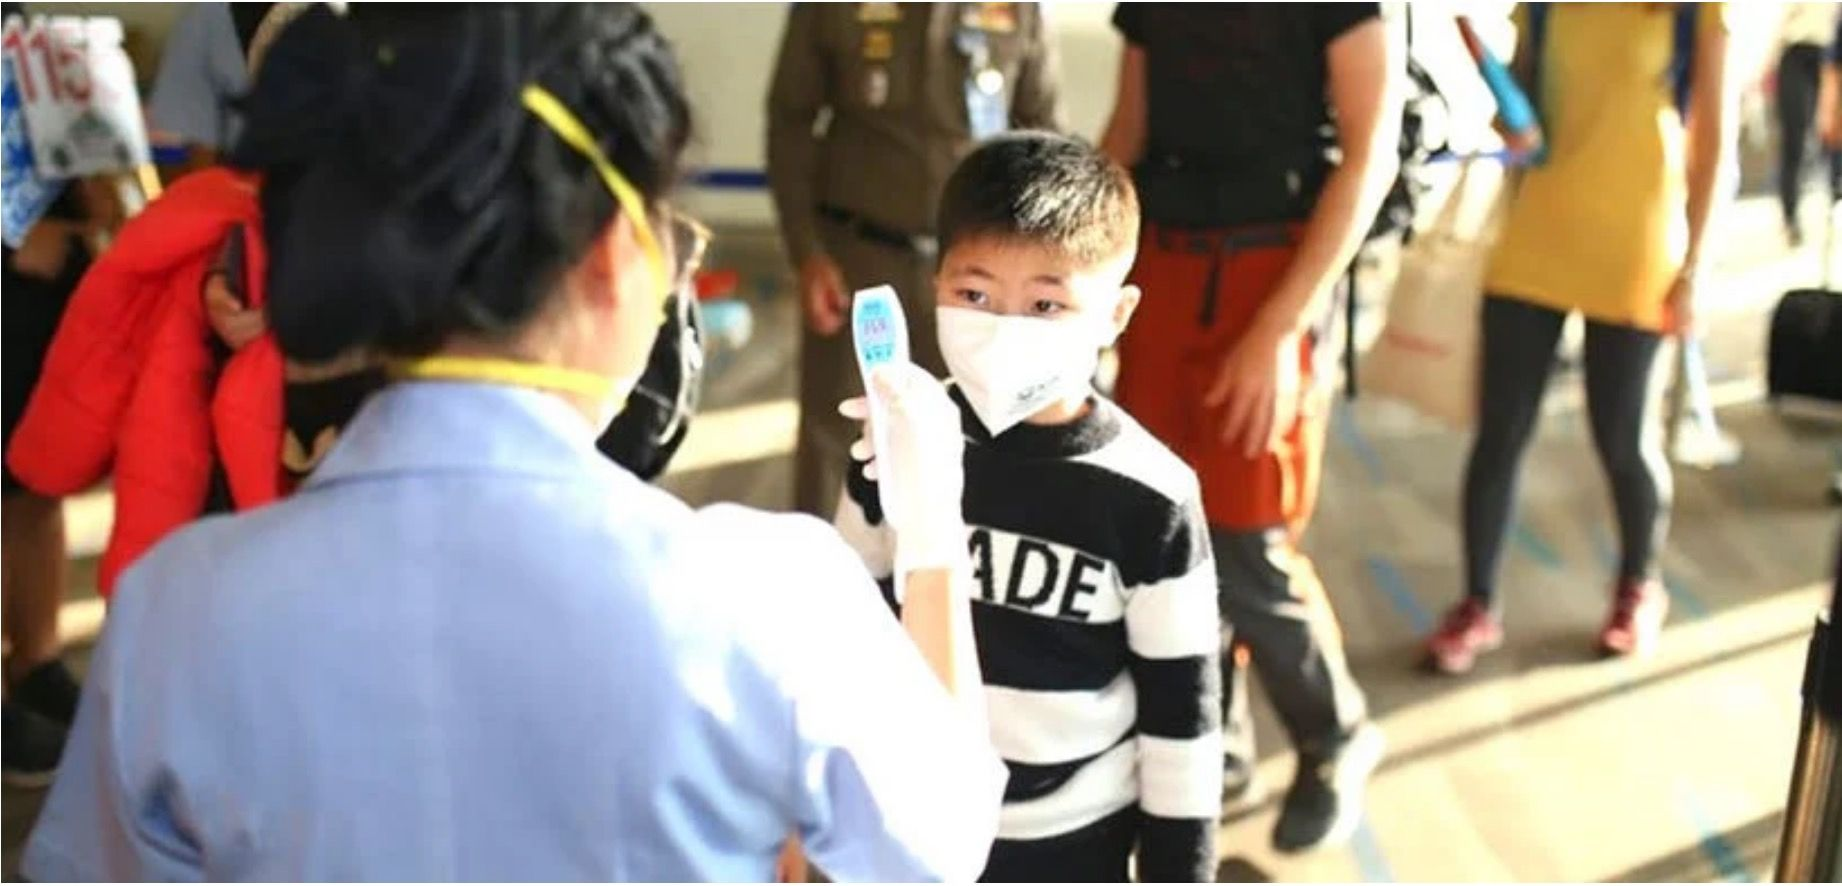 Phuket adds 4 Covid-19 cases, 3 in Bang Tao (Saturday) | Thaiger